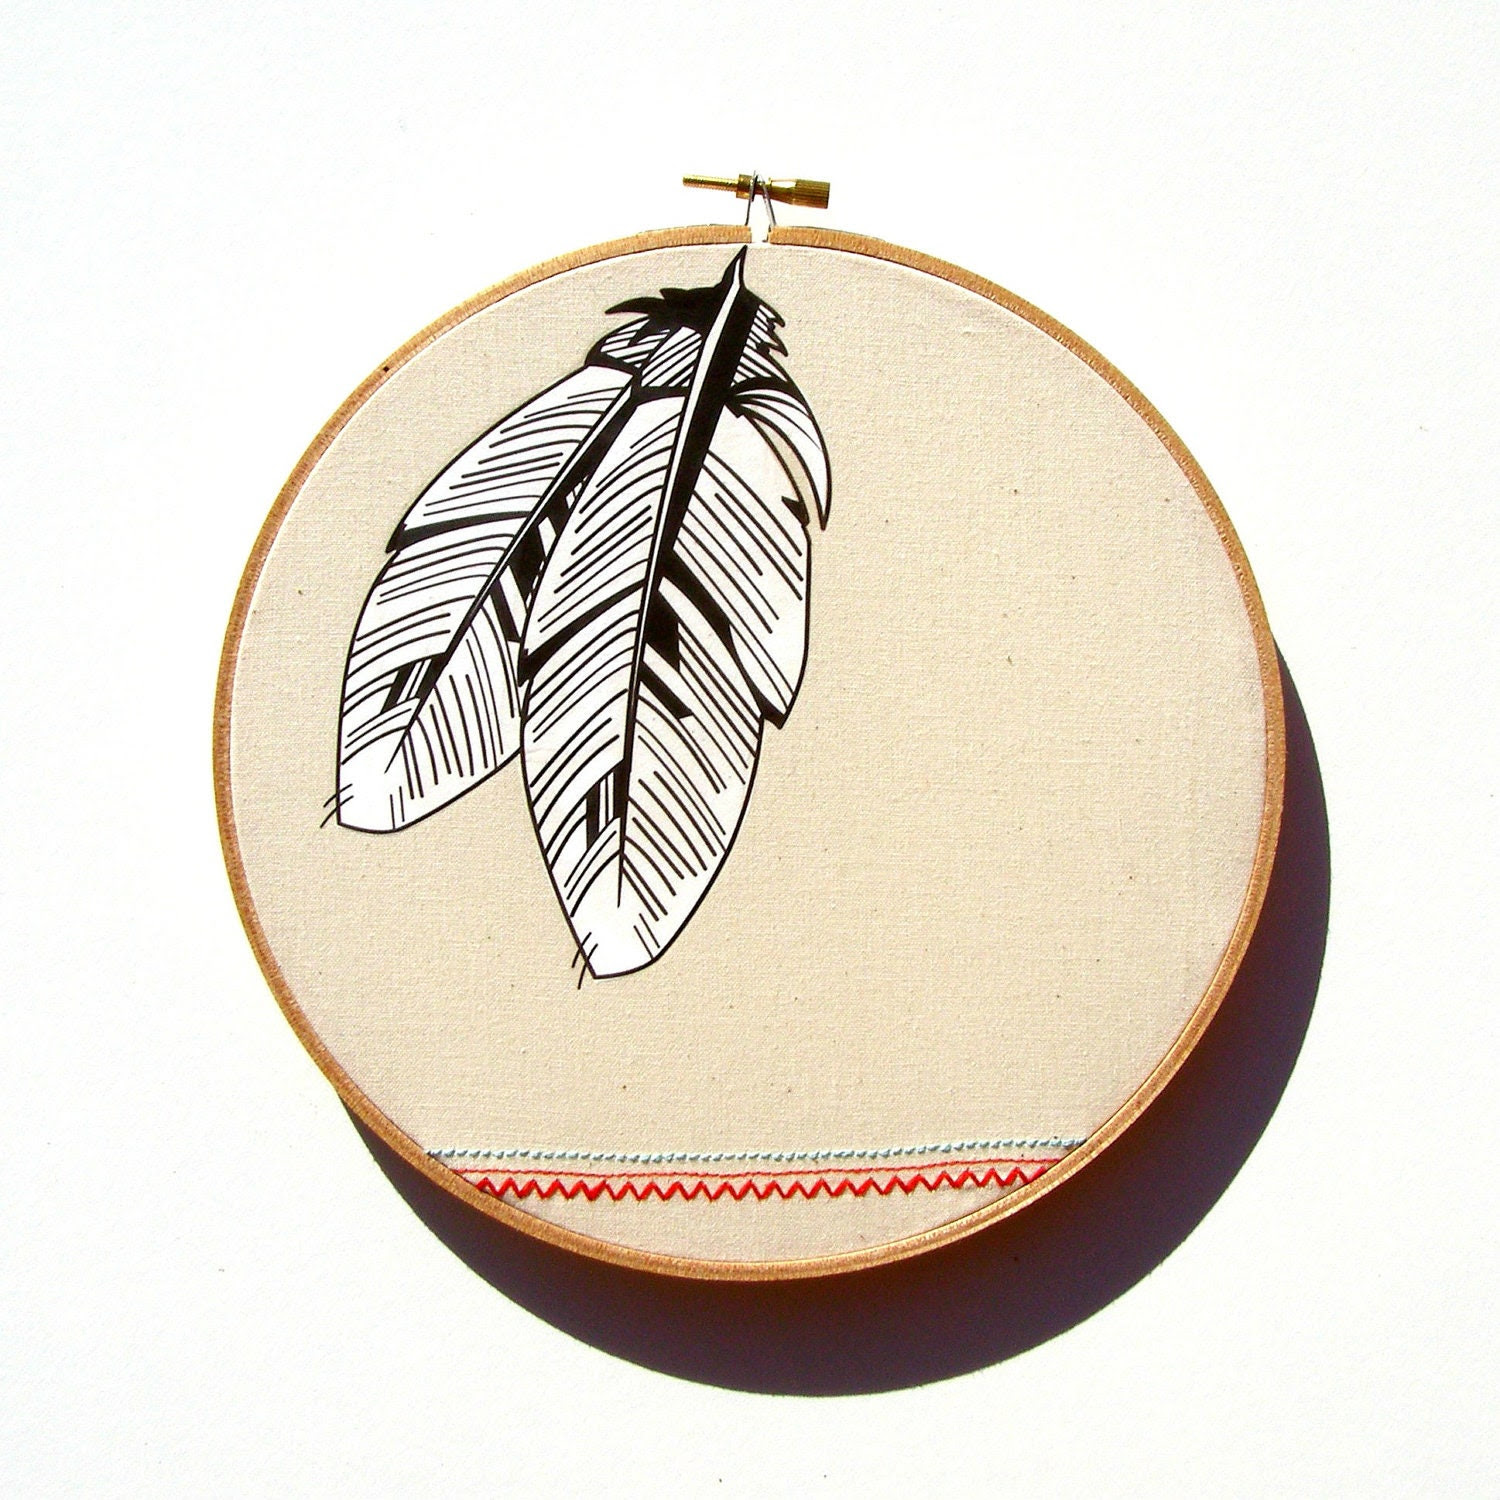 Two Feathers Hoop Art - print of original illustration on fabric with native / tribal inspired stitching detail